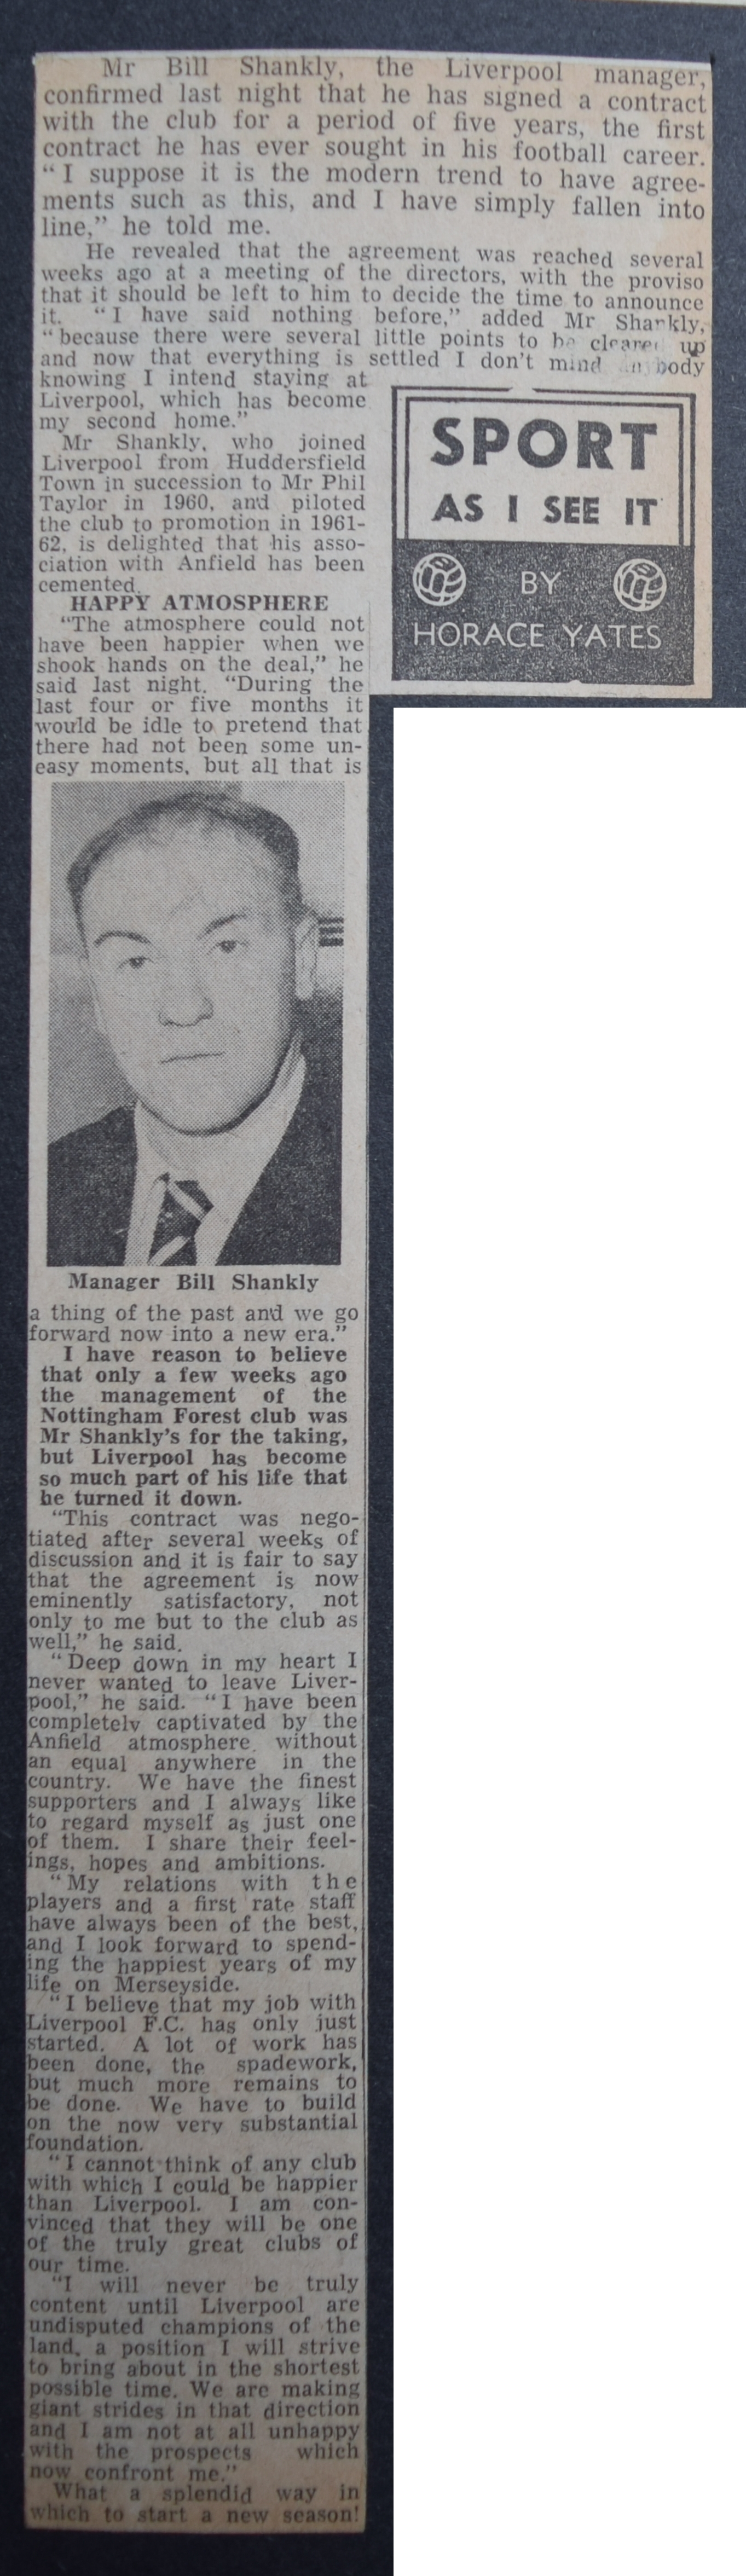 Shankly signs new contract - 1963